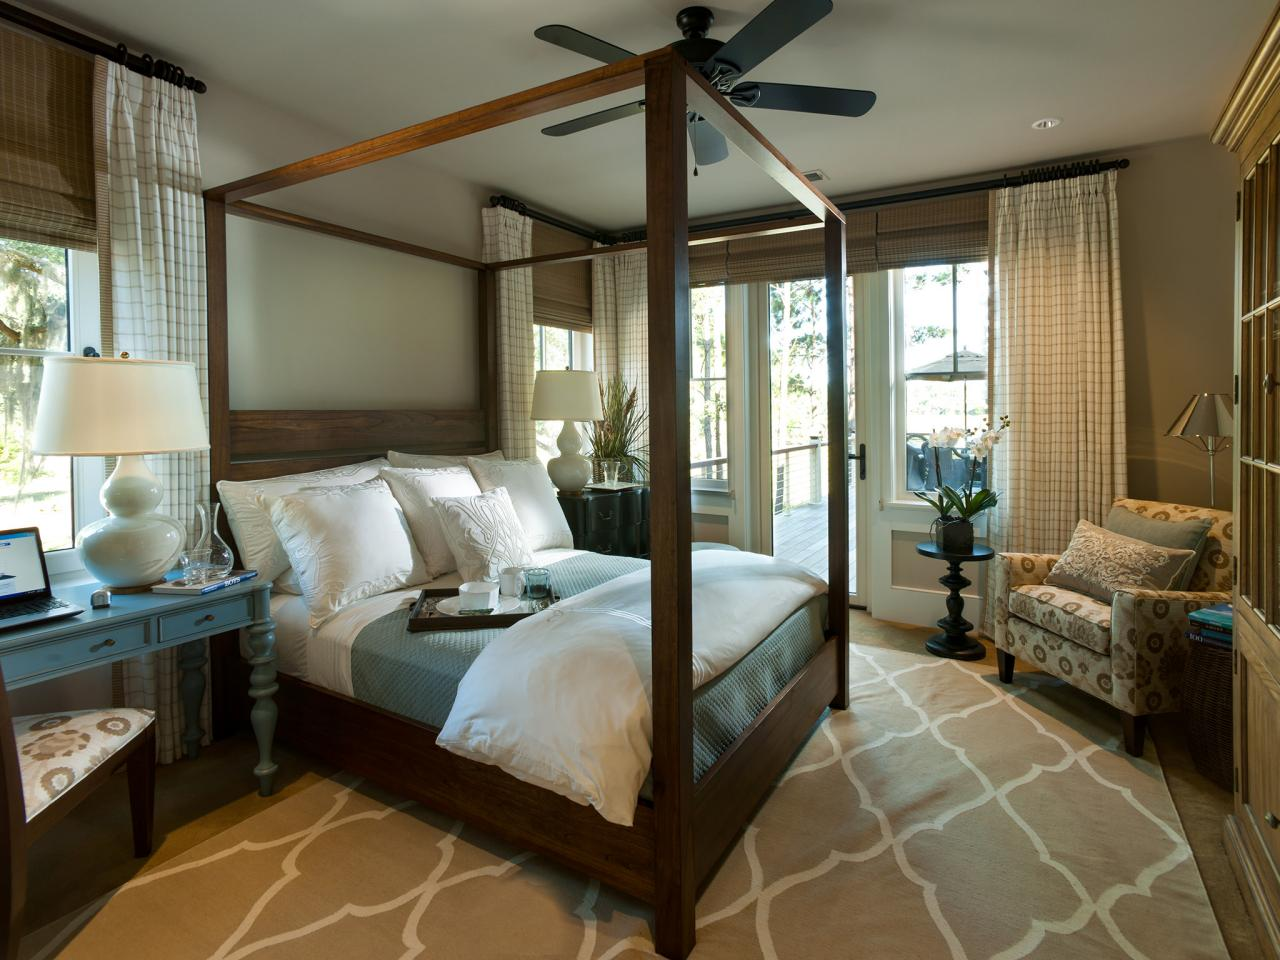 Master Bedrooms Of Master Bedroom From Hgtv Dream Home 2013 Pictures And